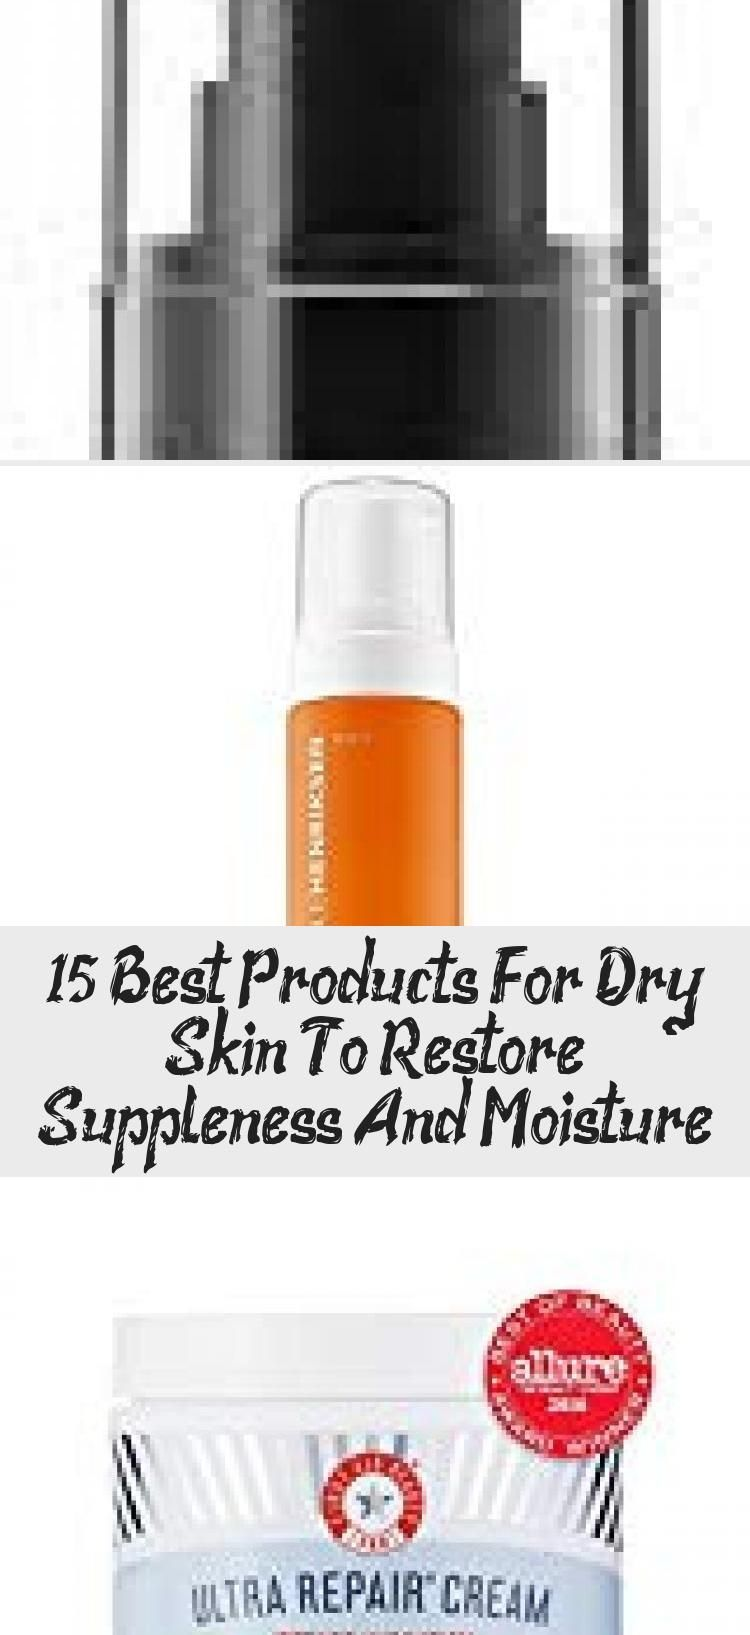 15 Best Products For Dry Skin To Restore Suppleness And Moisture - Beauty